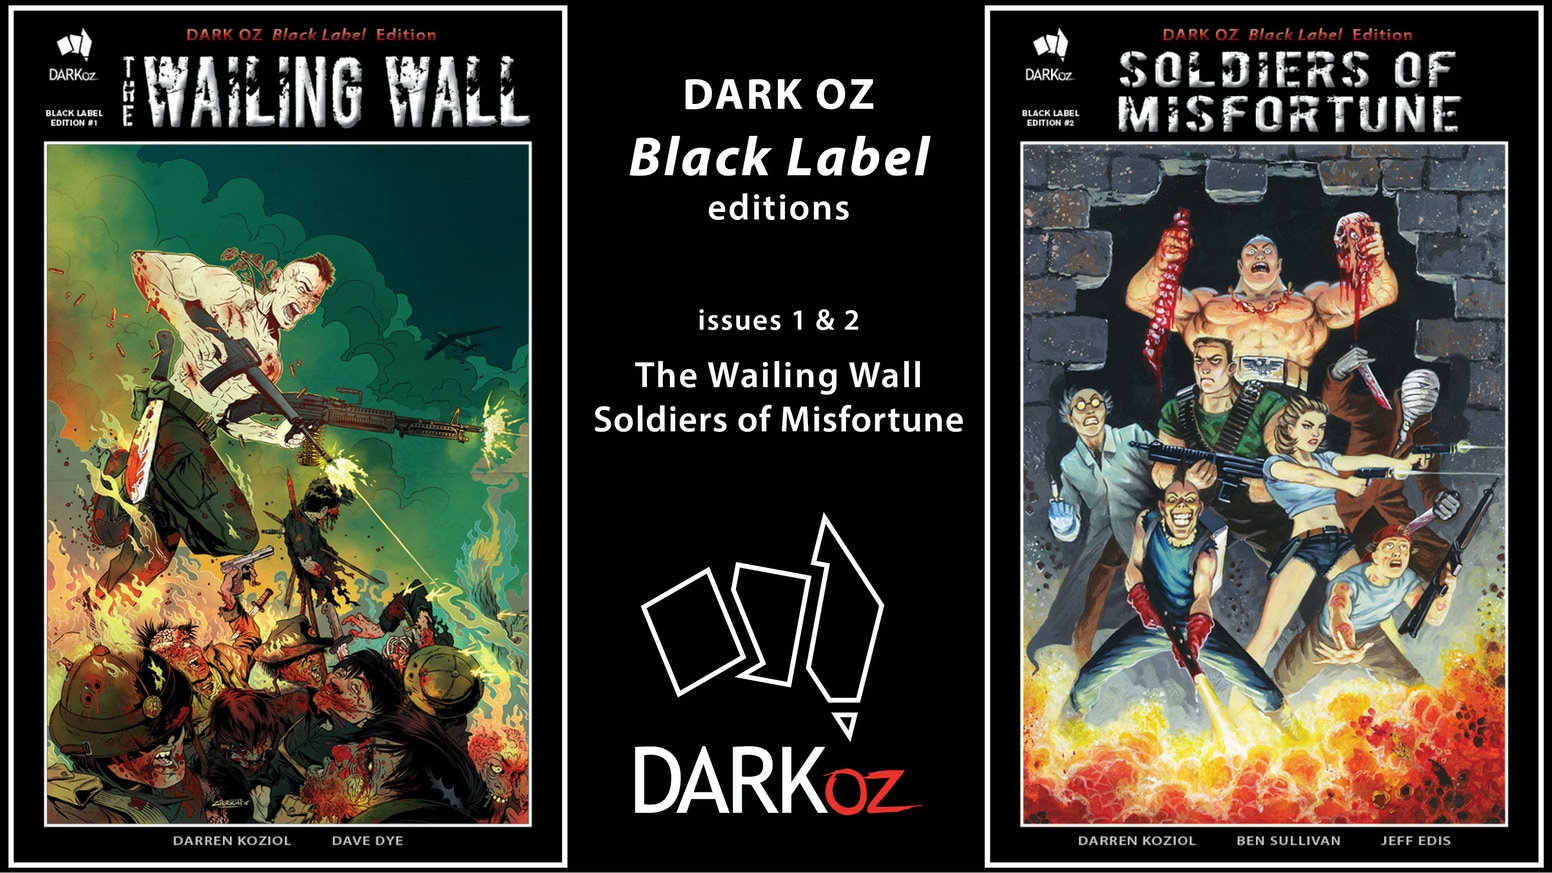 """Black Label Edition"" comic books from DARK OZ - a brand NEW series, be sure to get the 1st issue."